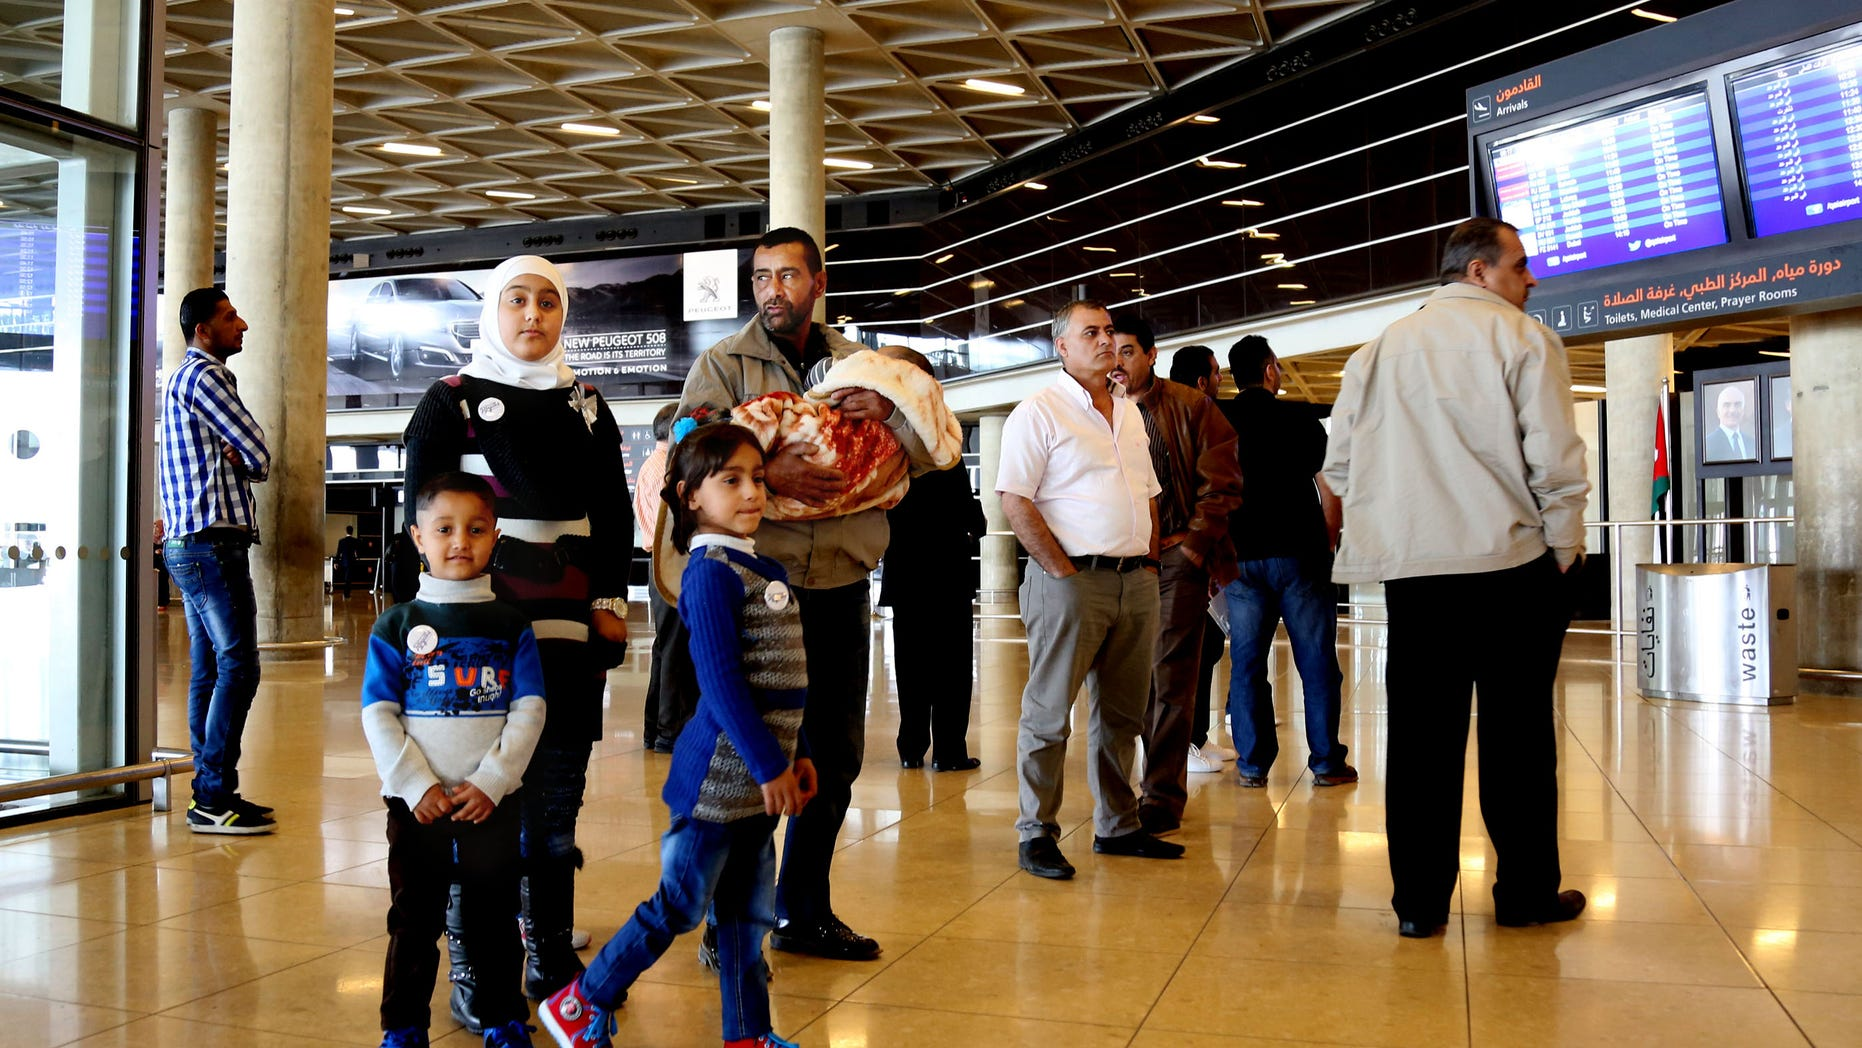 Syrian refugee Ahmad al-Abboud, center, waits with his family at the International Airport of Amman.